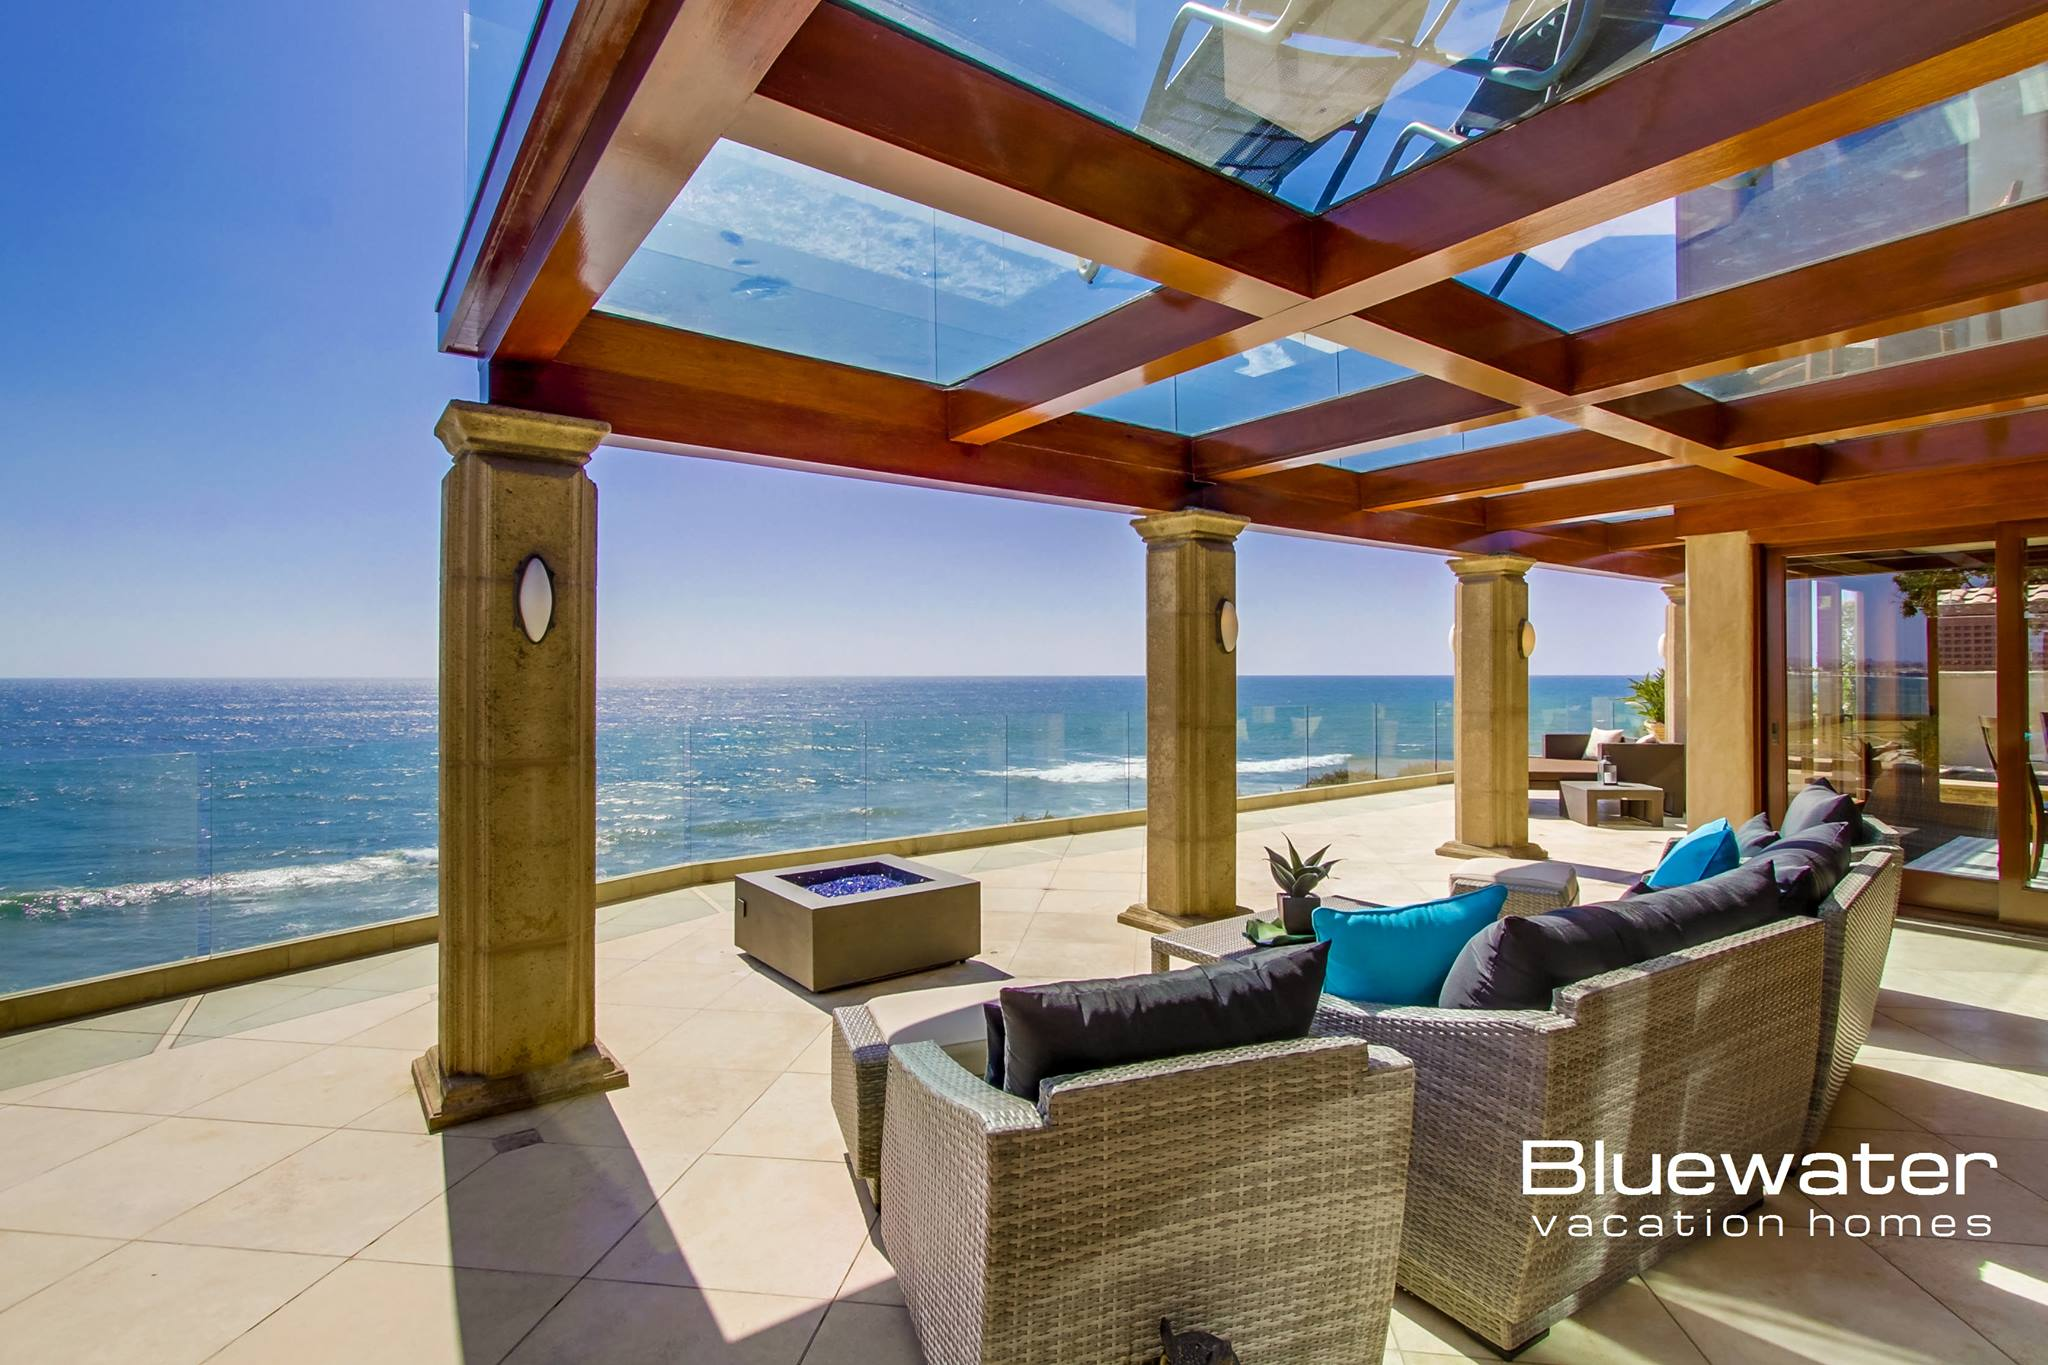 Bluewater-Vacation-Homes-Rental-Property